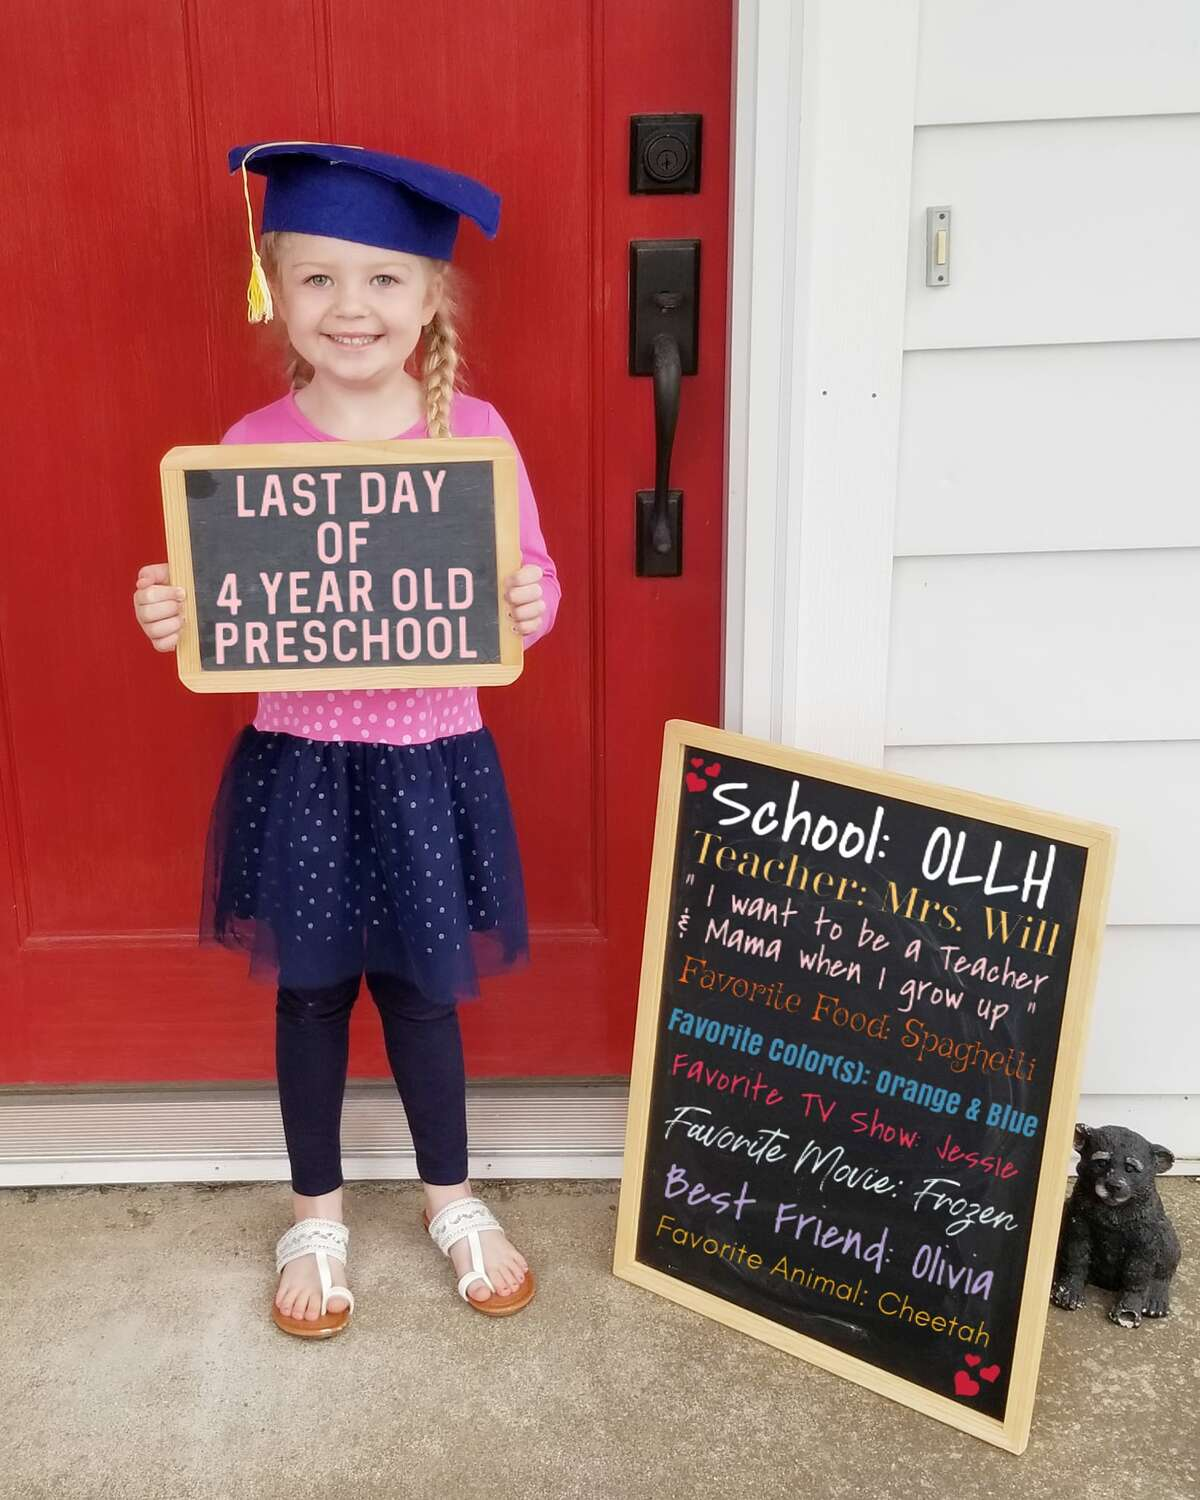 Senior graduates are not the only ones left out because of the coronavirus pandemic. The classes of 2032 and 2033, currently kindergartners and preschoolers have also missed out on milestones. Congratulations to those students for making your first steps of many on your educational paths.